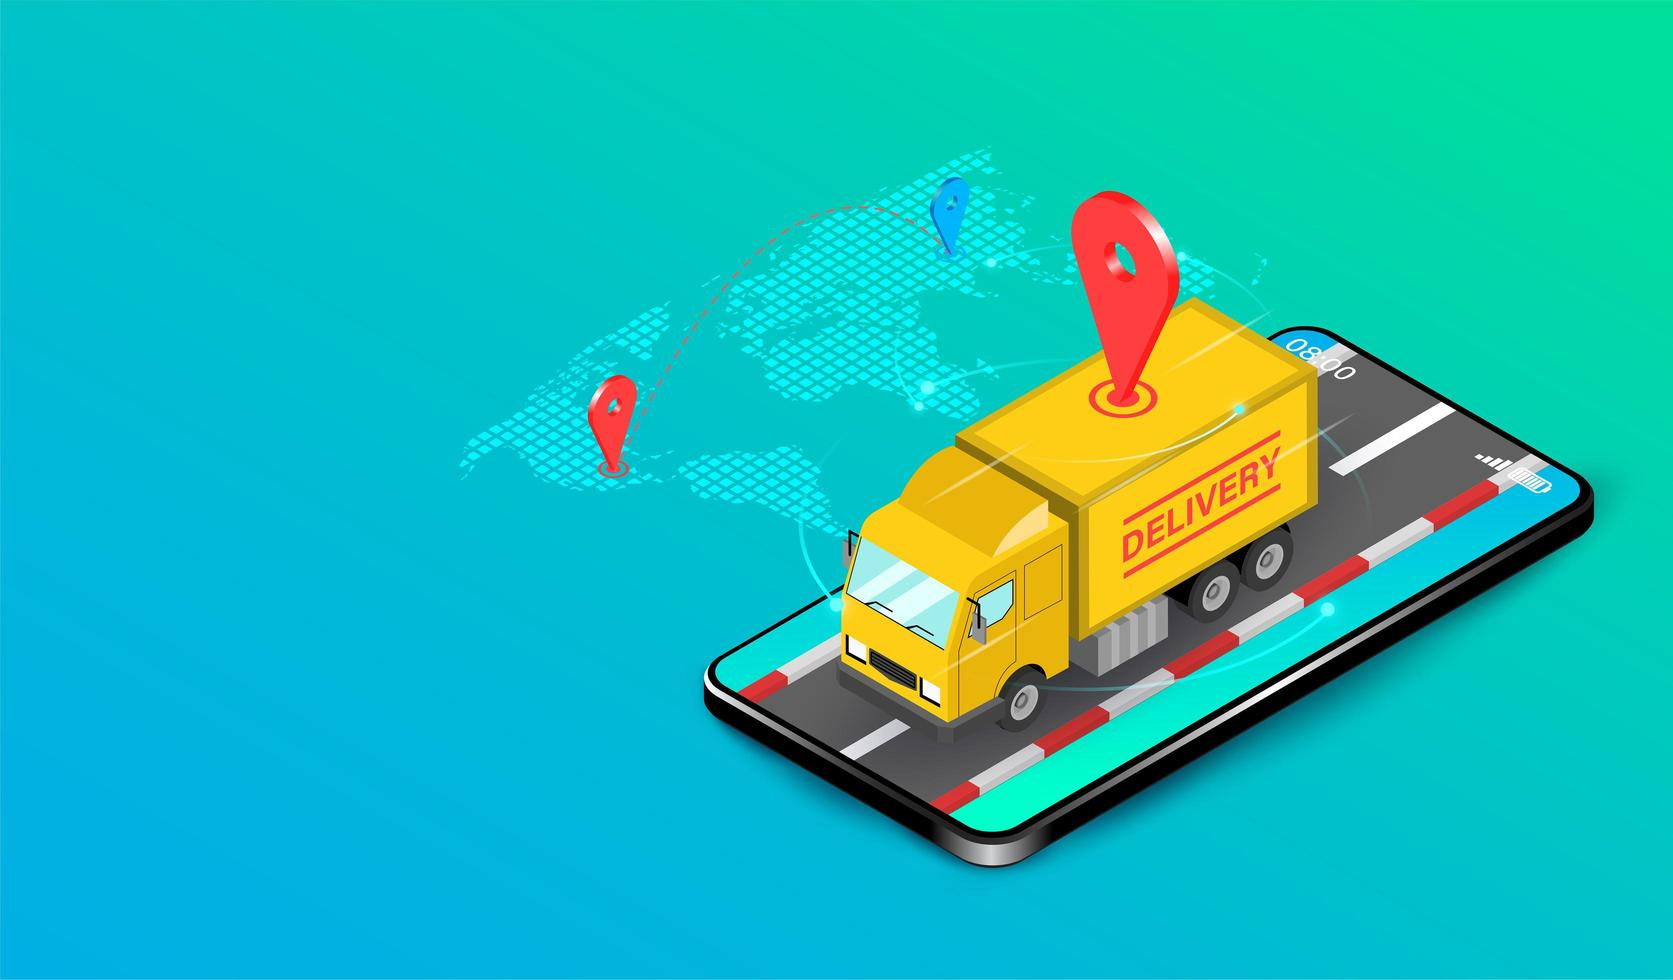 Delivery Express by Truck with by E-Commerce System on Smartphone vector